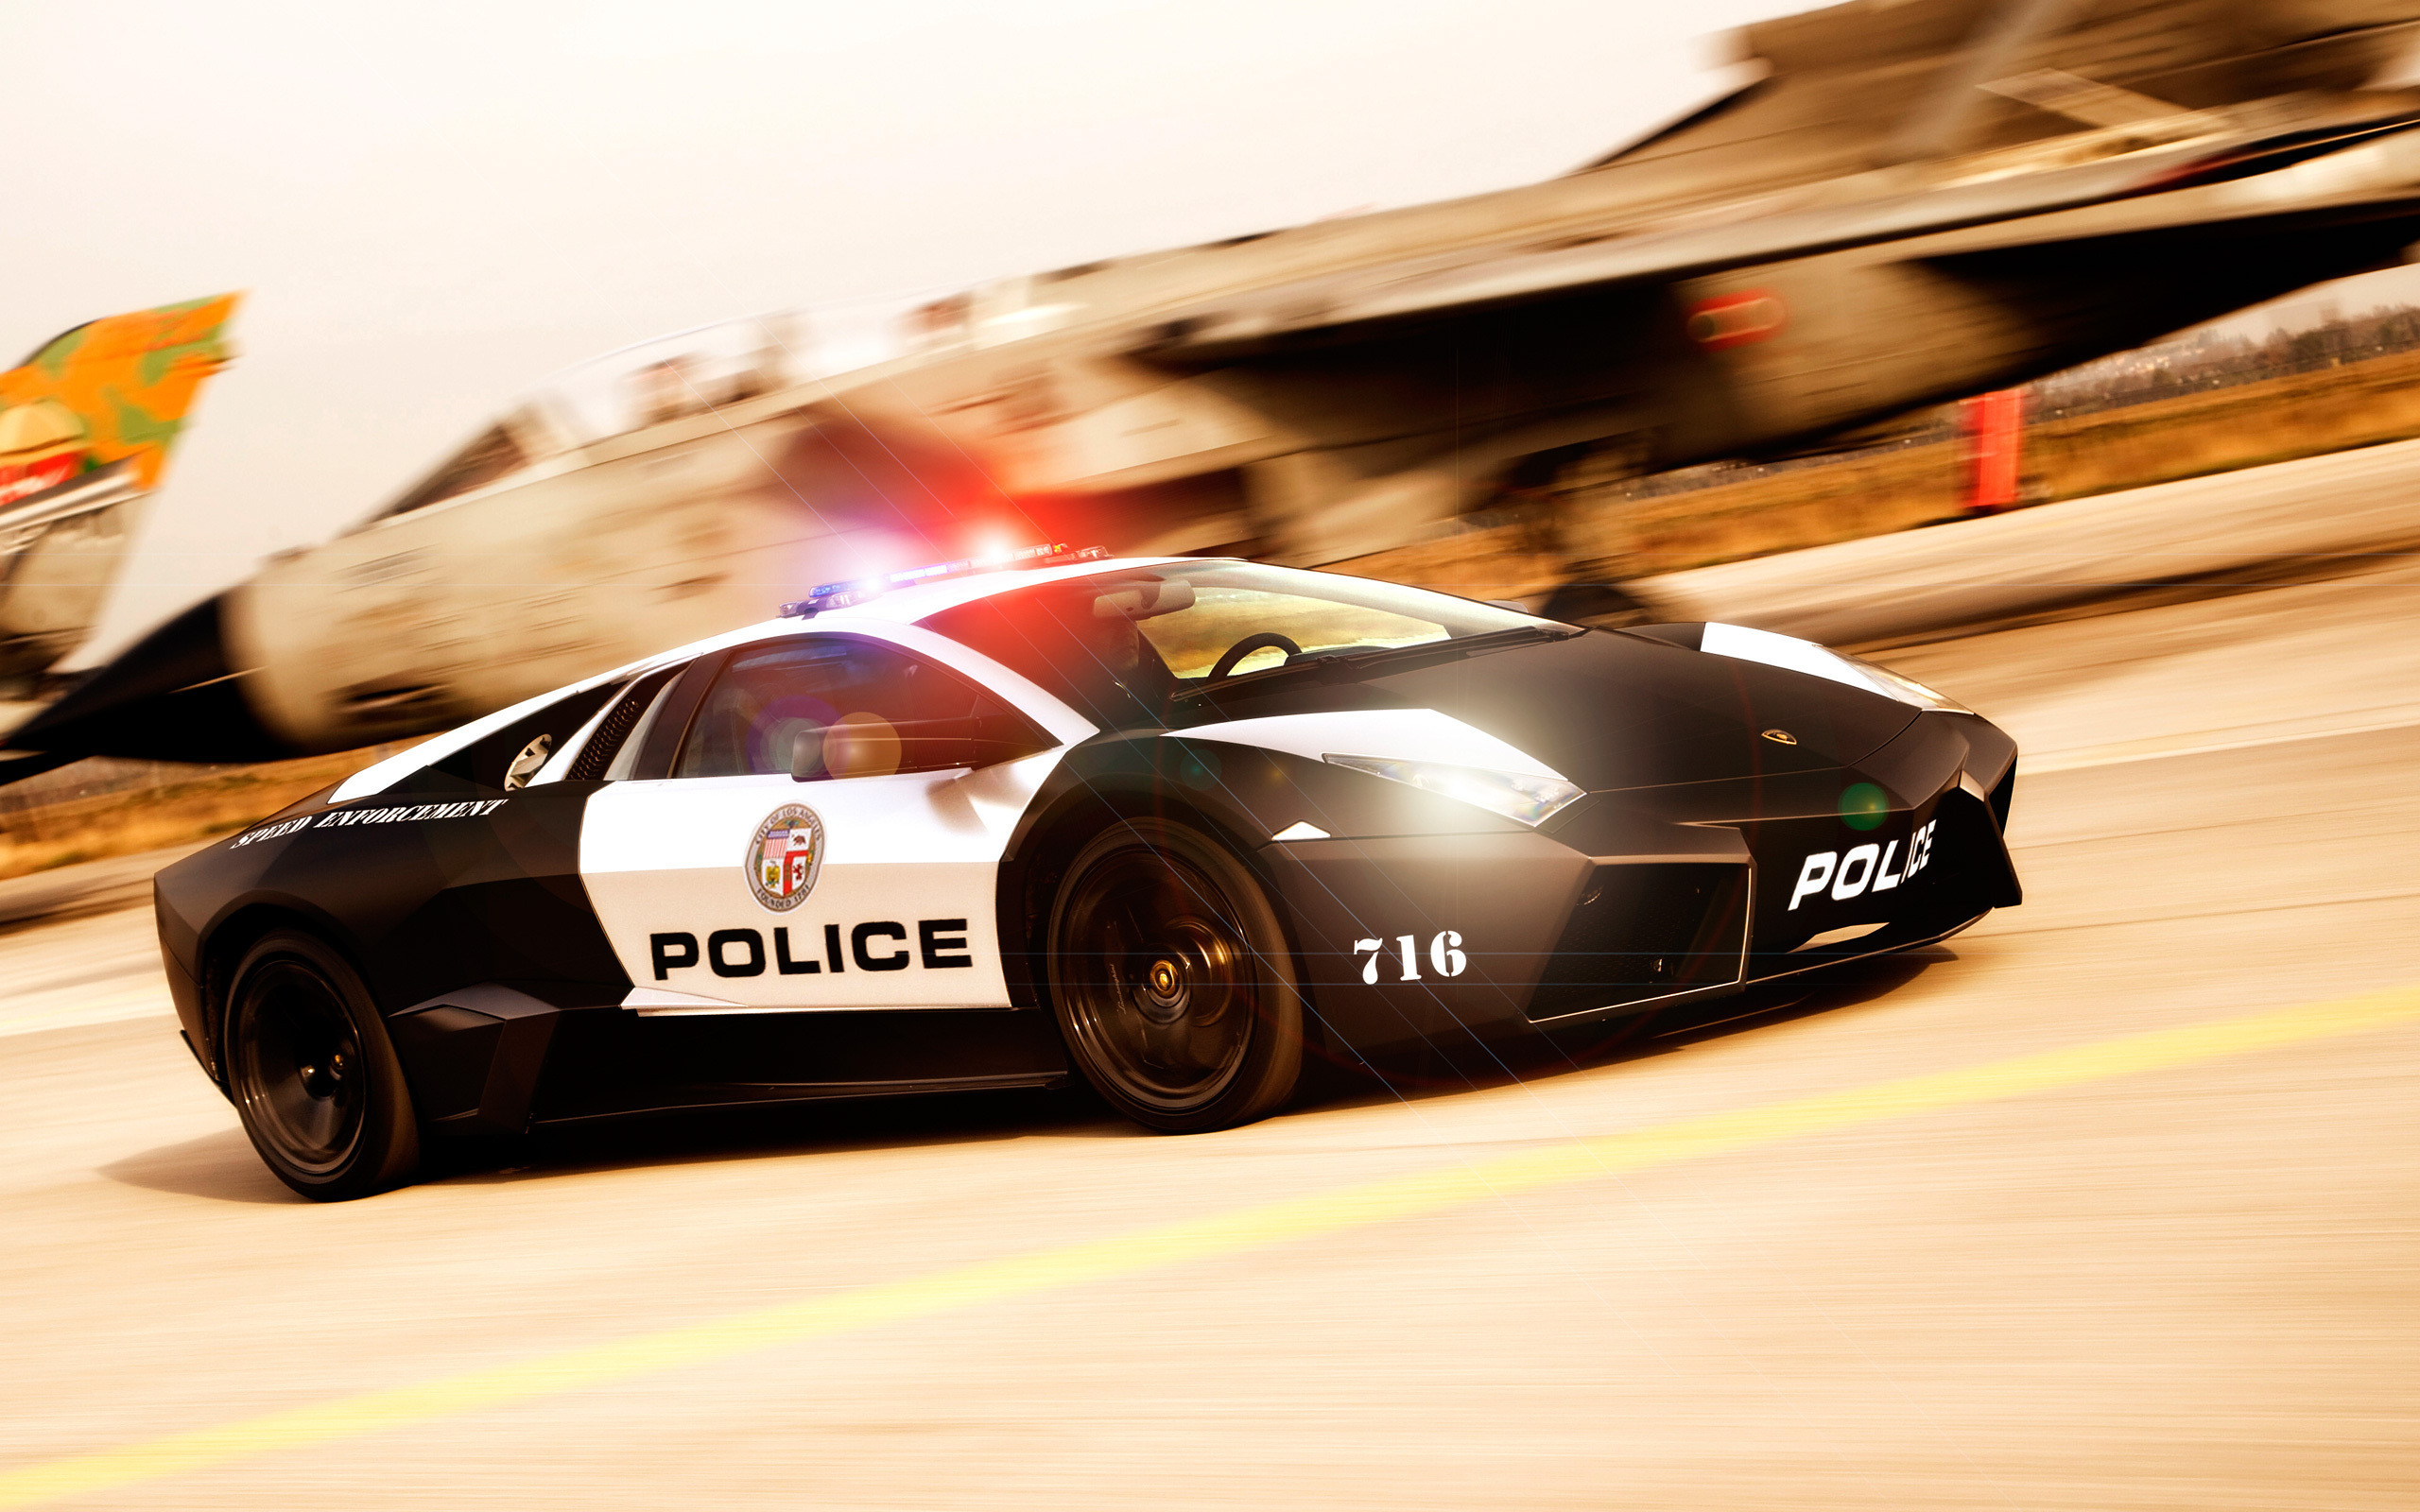 NFS Police Car Wallpapers   2560x1600   905777 2560x1600